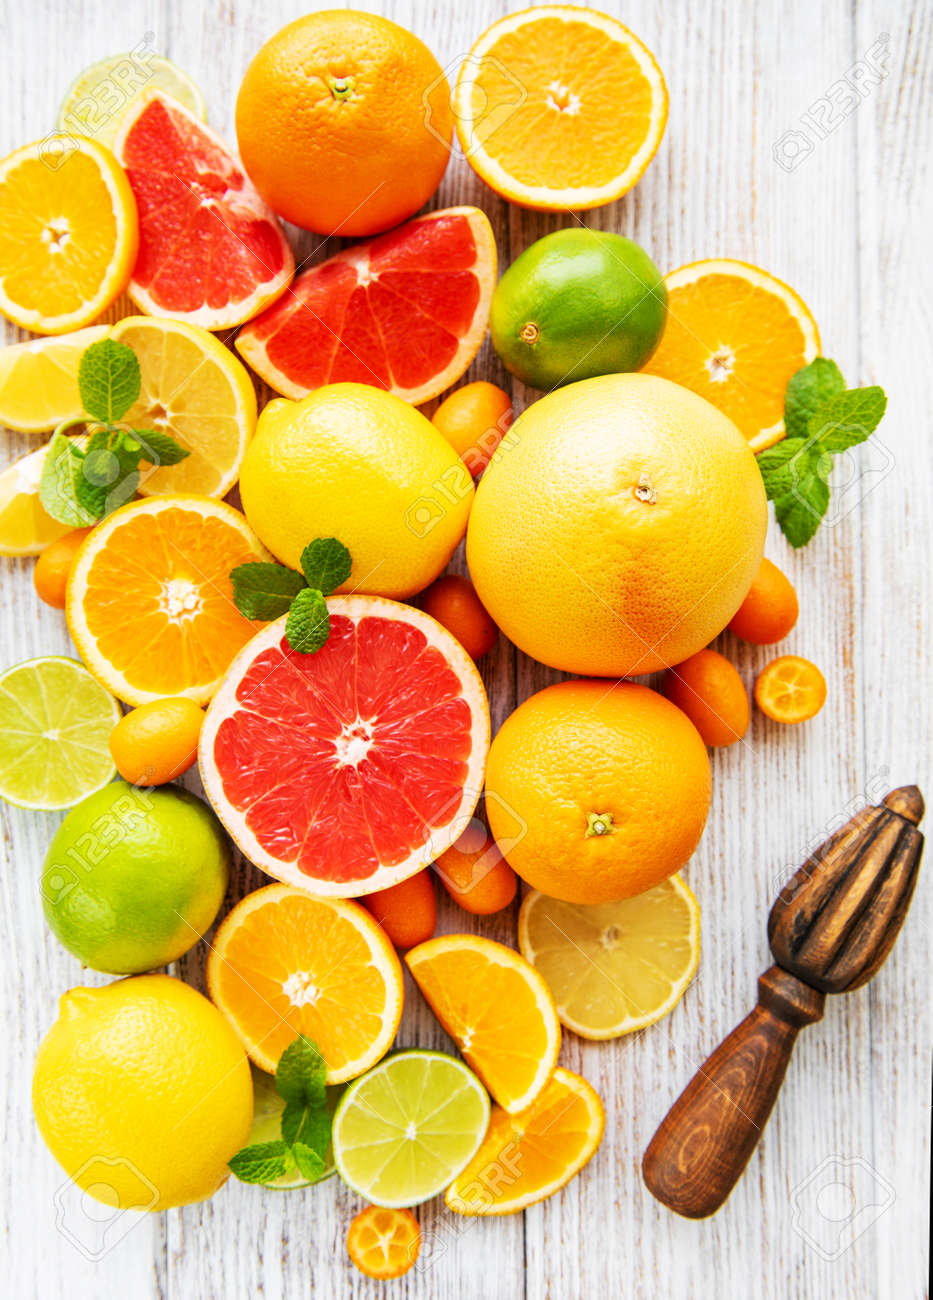 Fresh citrus fruits on a old wooden background - 121917485